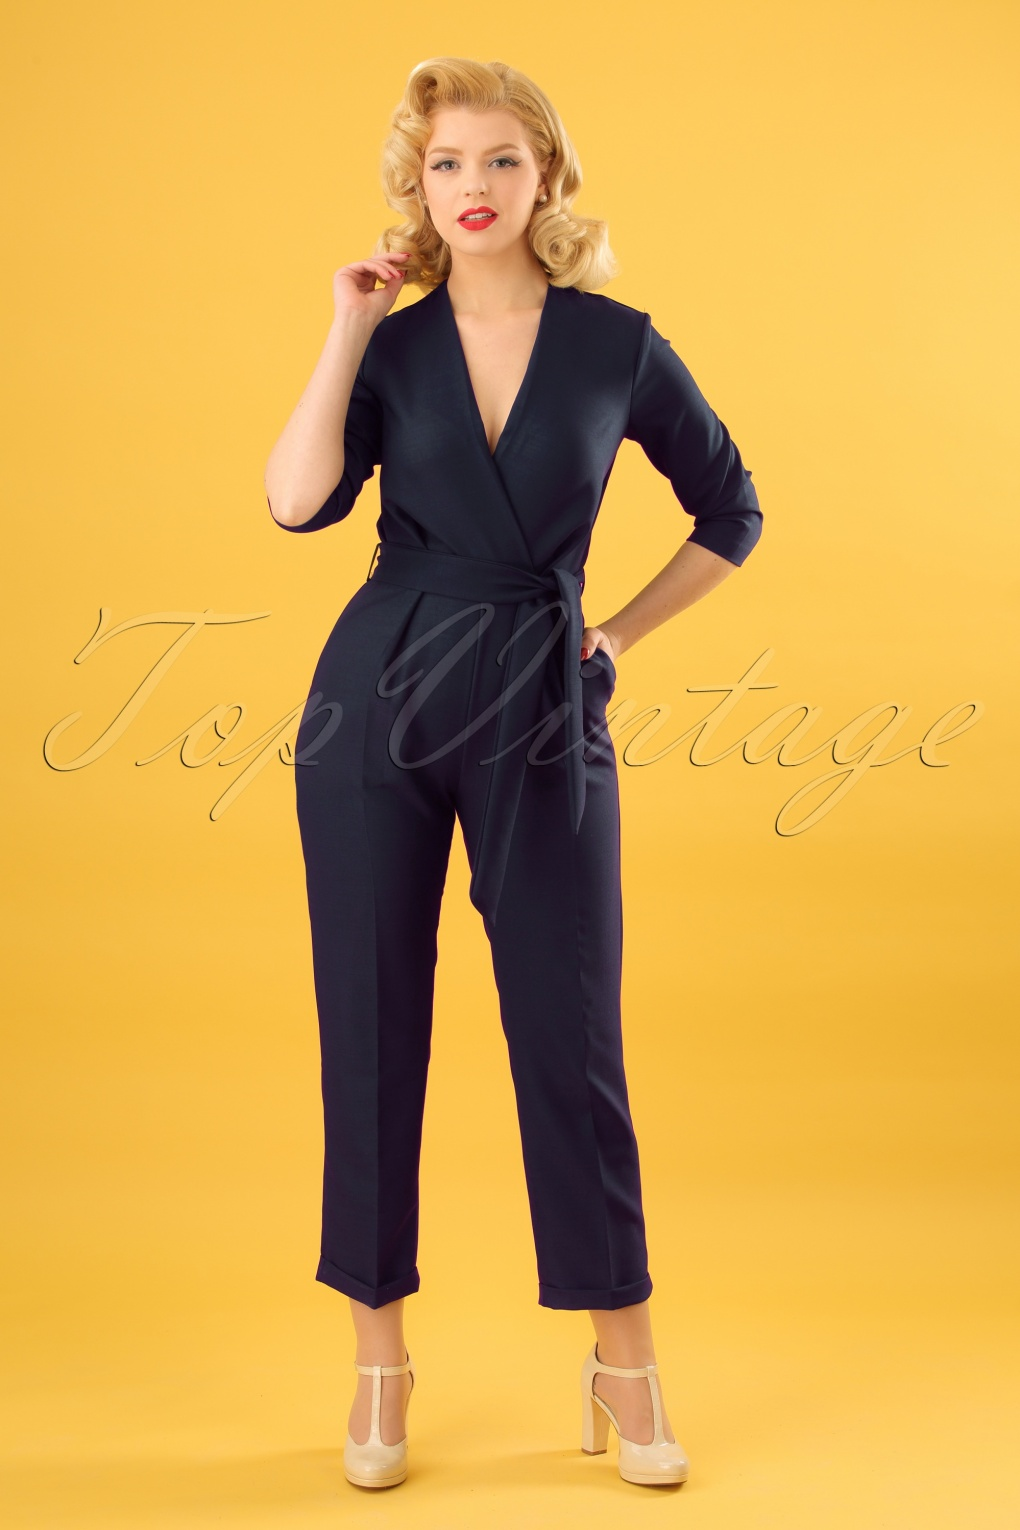 Vintage High Waisted Trousers, Sailor Pants, Jeans 60s Marcia Crossover Jumpsuit in Navy £79.12 AT vintagedancer.com